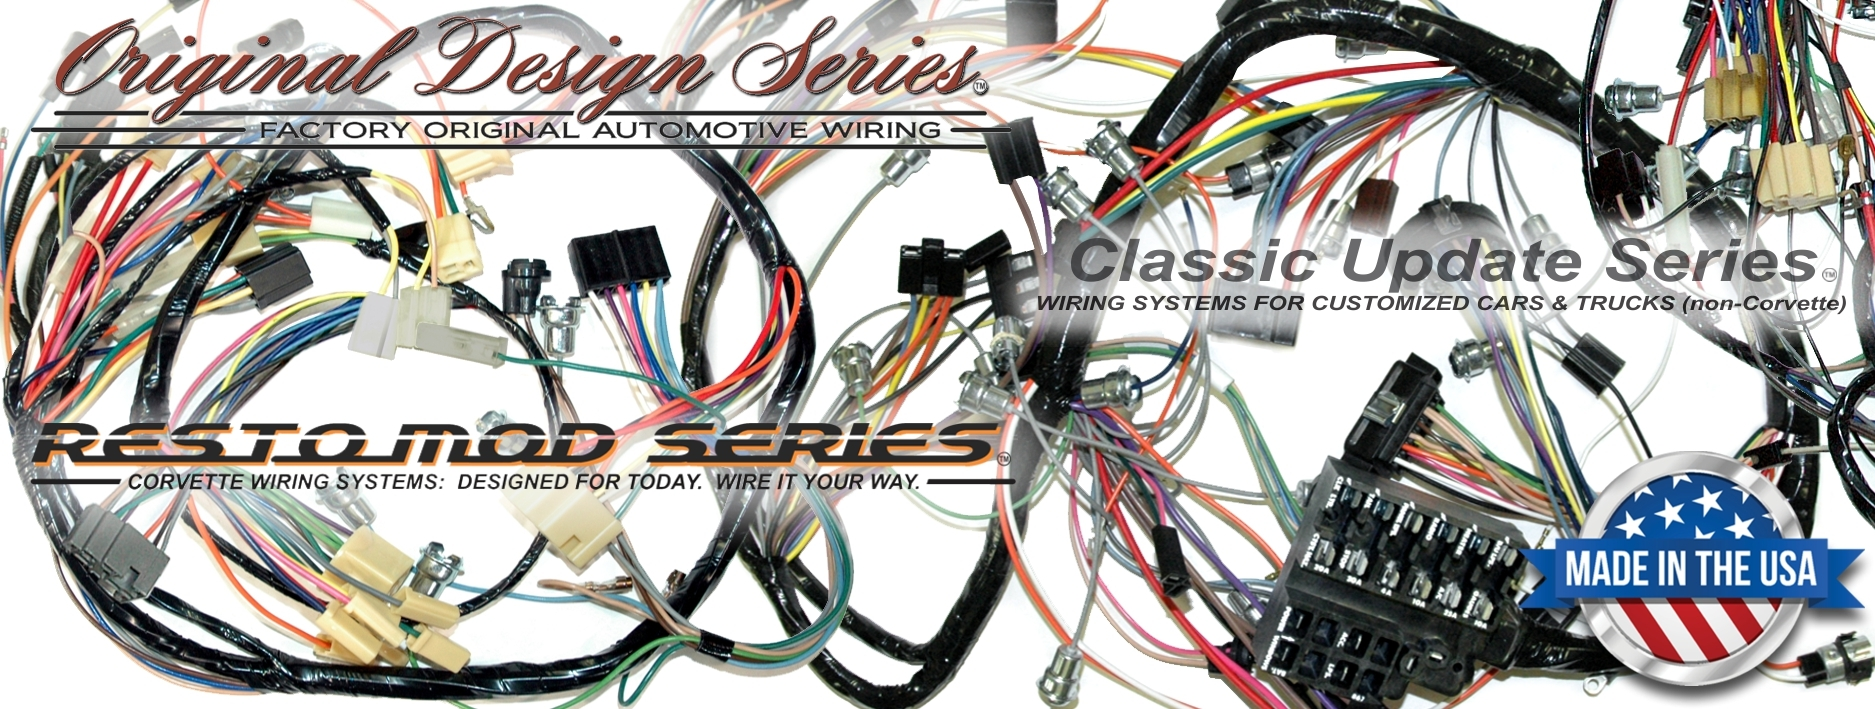 Exact Oem Reproduction Wiring Harnesses And Restomod Systems 1968 Chrysler All Models Diagram E2 80 93 Automotive Individual Complete